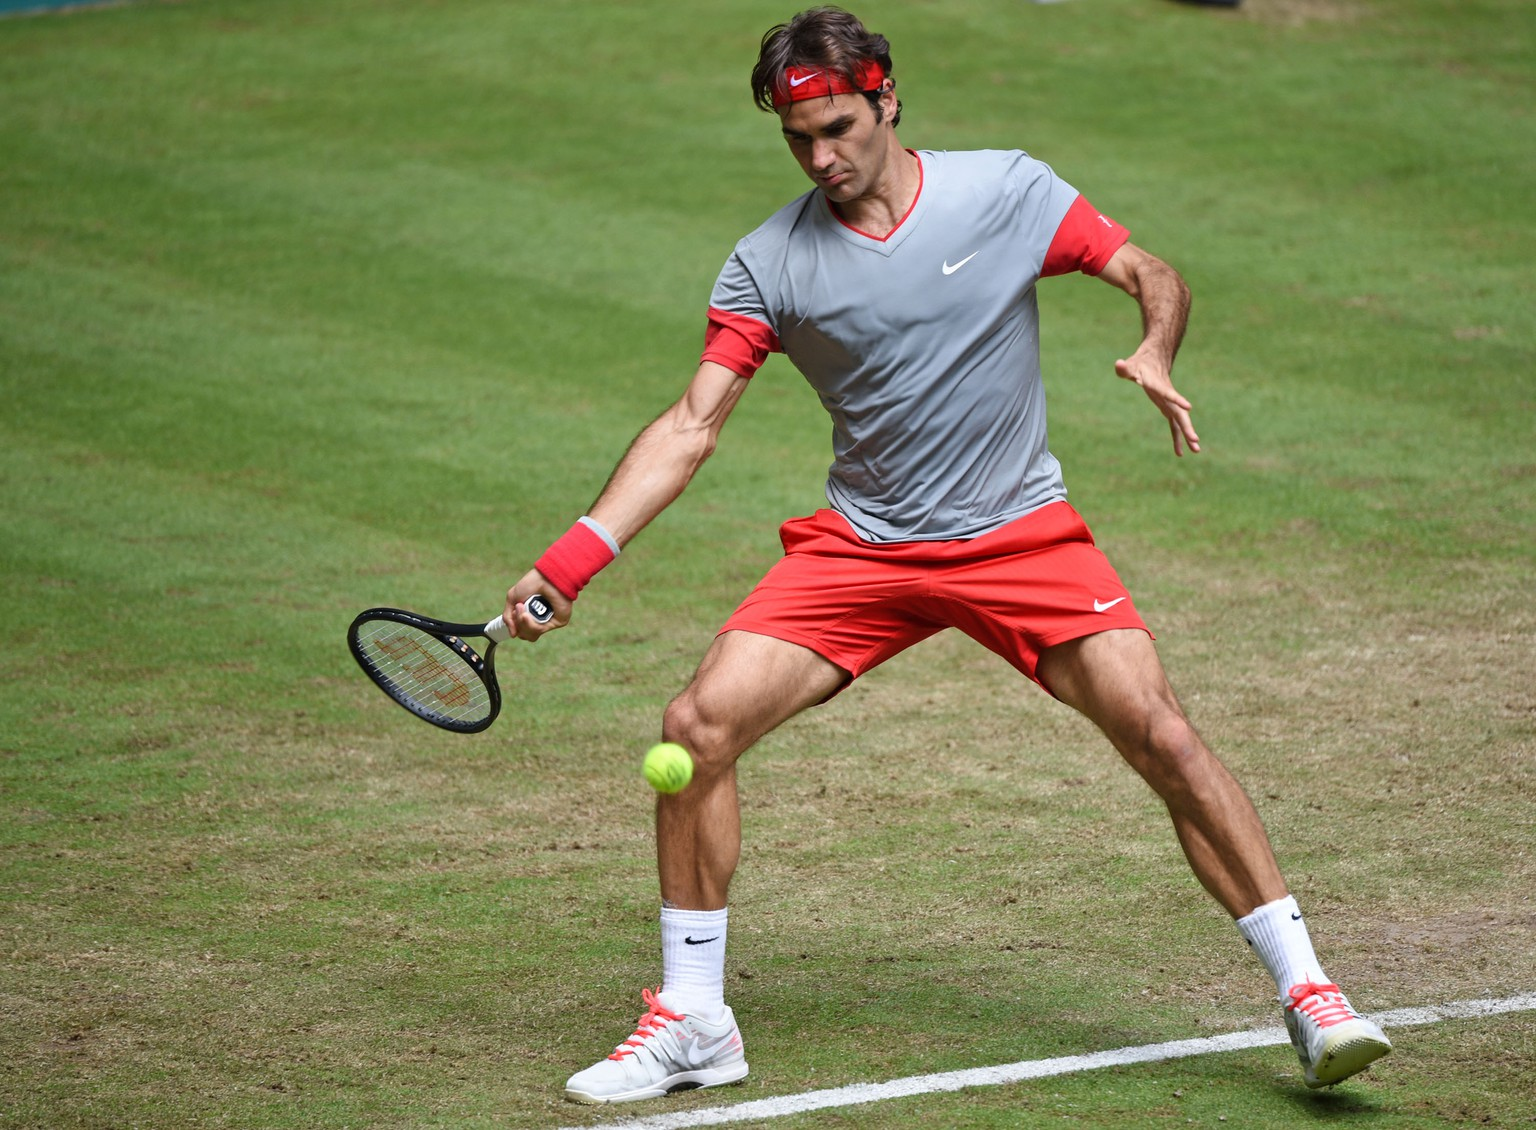 HALLE, GERMANY - JUNE 12:  Roger Federer of Switzerland plays a forehand in his match against Joao Sousa of Portugal during day four of the Gerry Weber Open at Gerry Weber Stadium on June 12, 2014 in Halle, Germany.  (Photo by Thomas Starke/Bongarts/Getty Images)